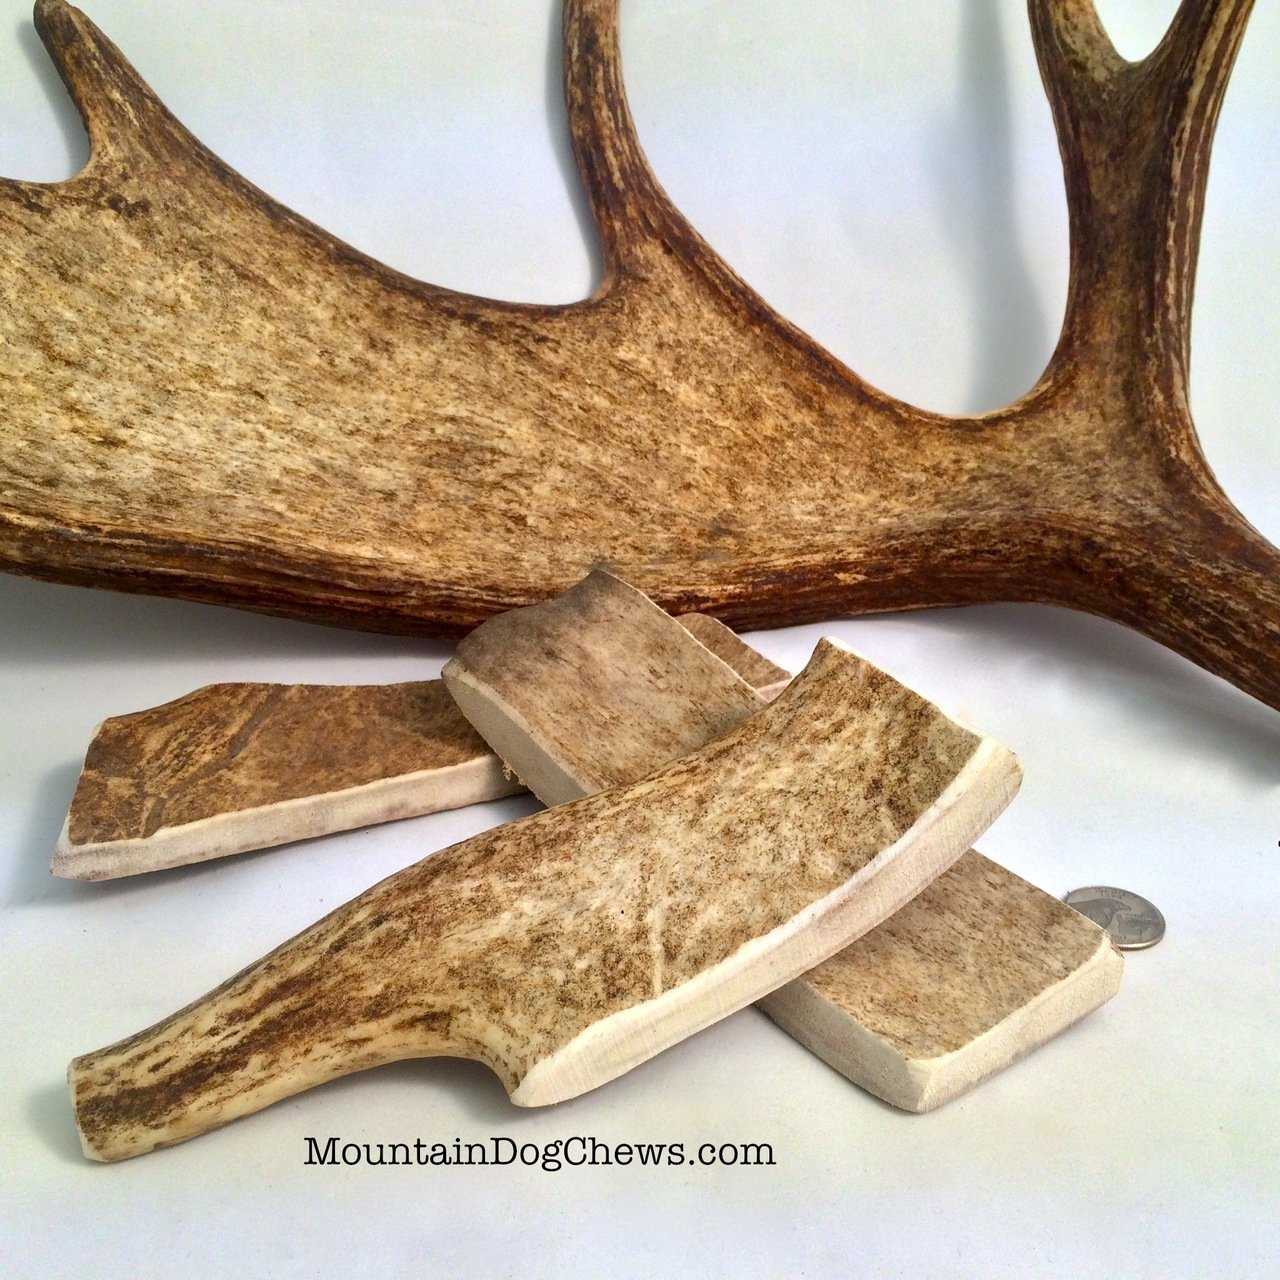 Mountain Dog Chews- Large Moose Paddle Antler Dog Chew 8 Inches Long for Large Dogs 100 Organic USA Sourced Grade-A Naturally Shed Moose Antlers